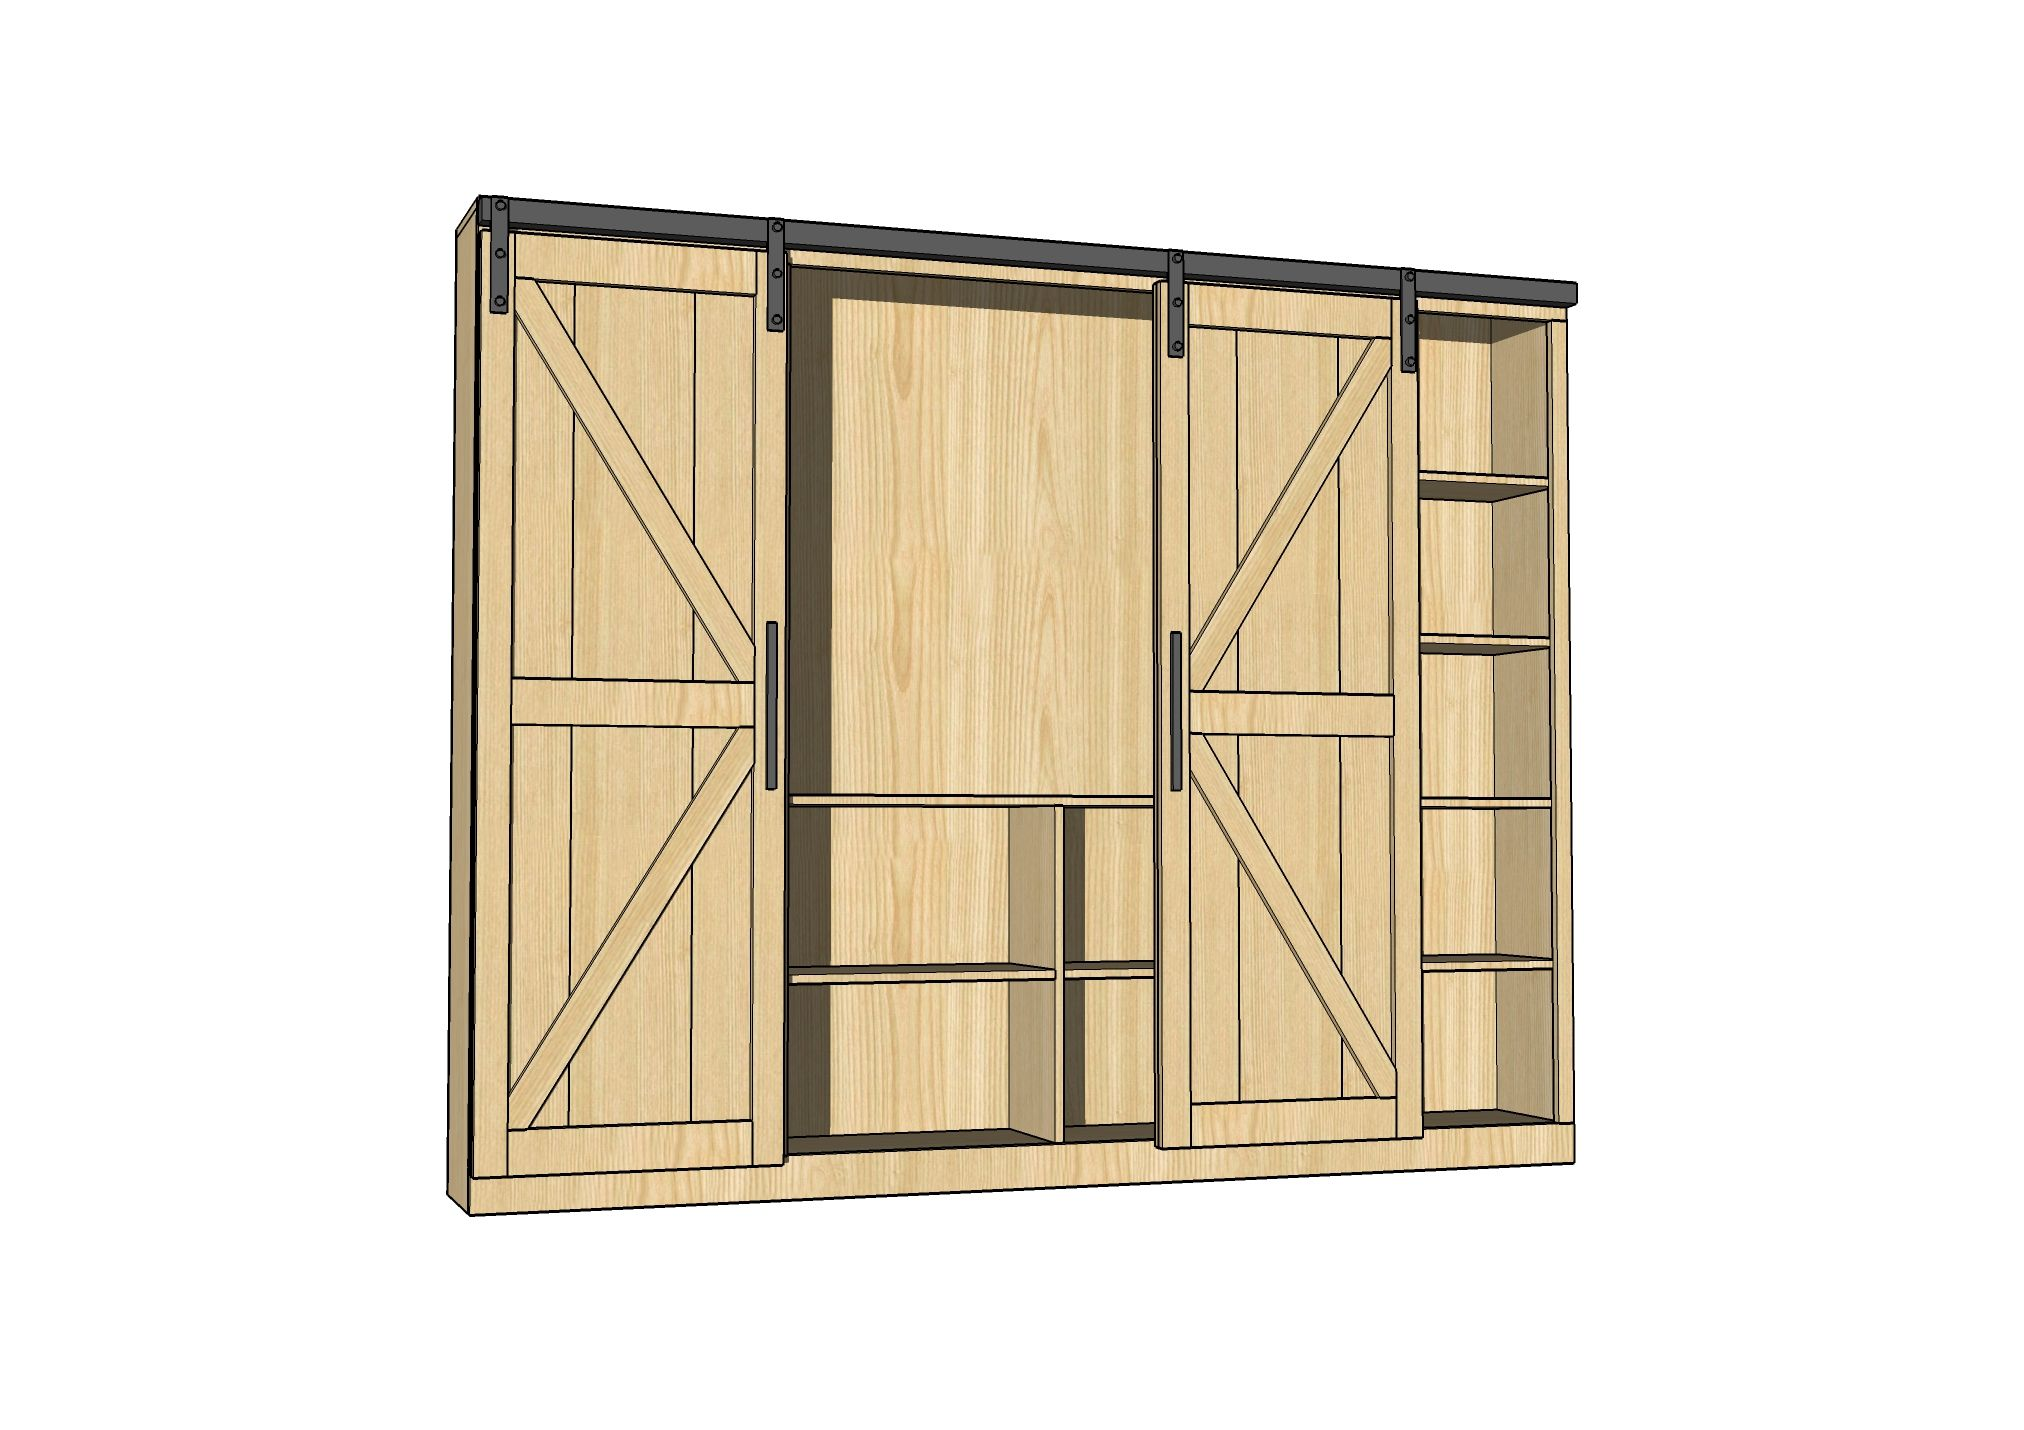 Sliding Barn Door Media Wall Suite (Ana White) | Ana white, Barn ...